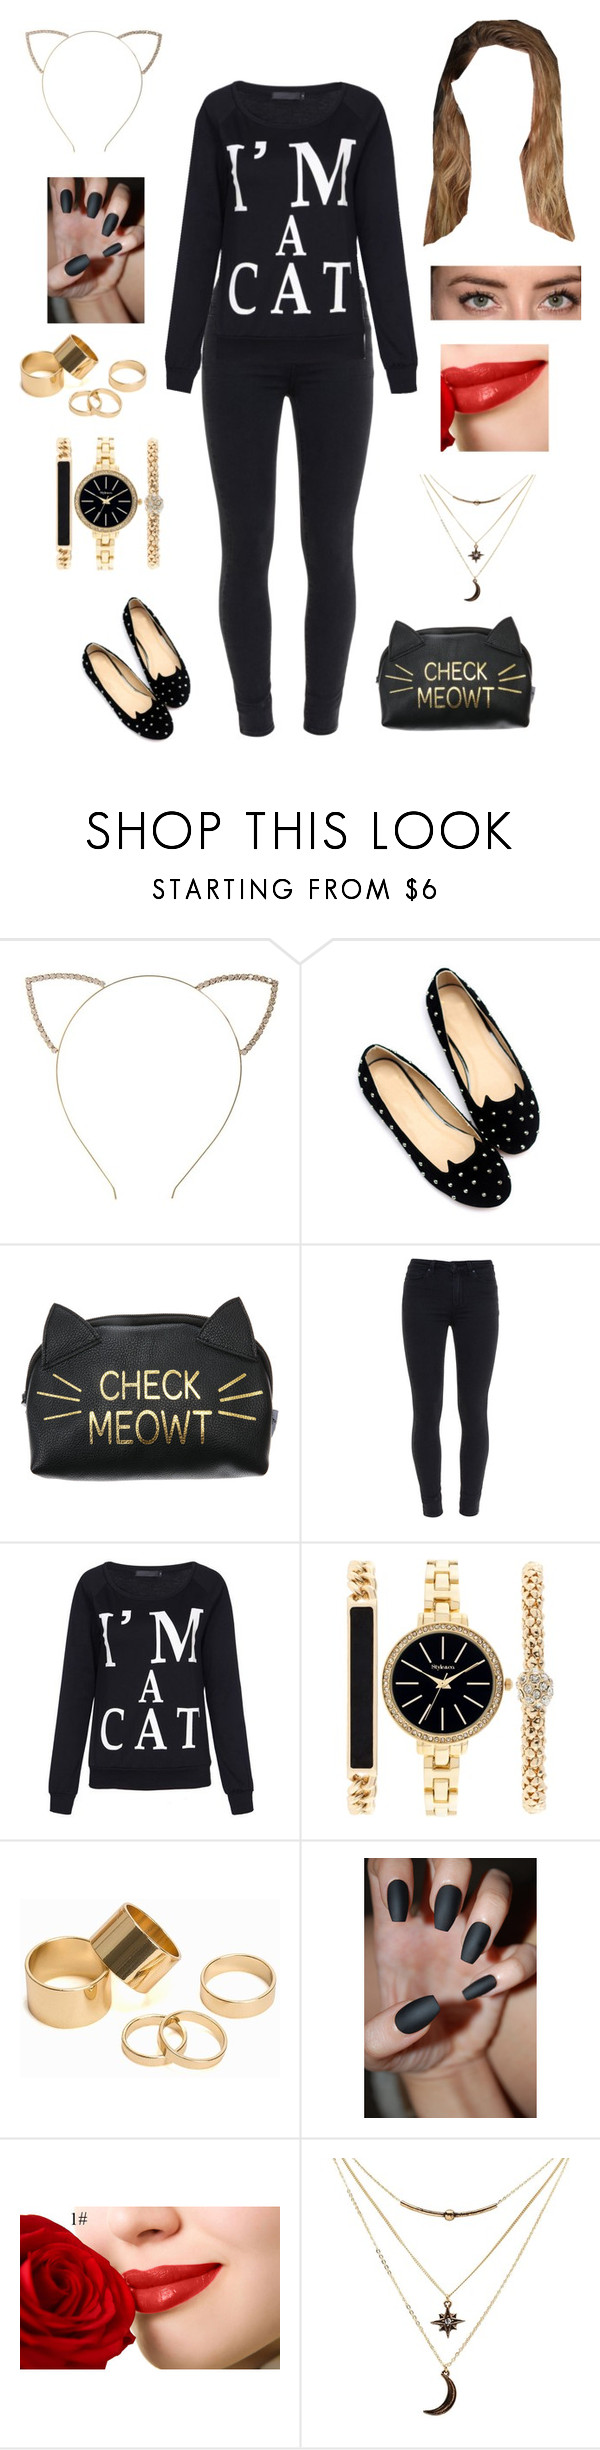 """Untitled #654"" by cutiepie92343 on Polyvore featuring Cara, Paige Denim, Style & Co., Pieces and Charlotte Russe"